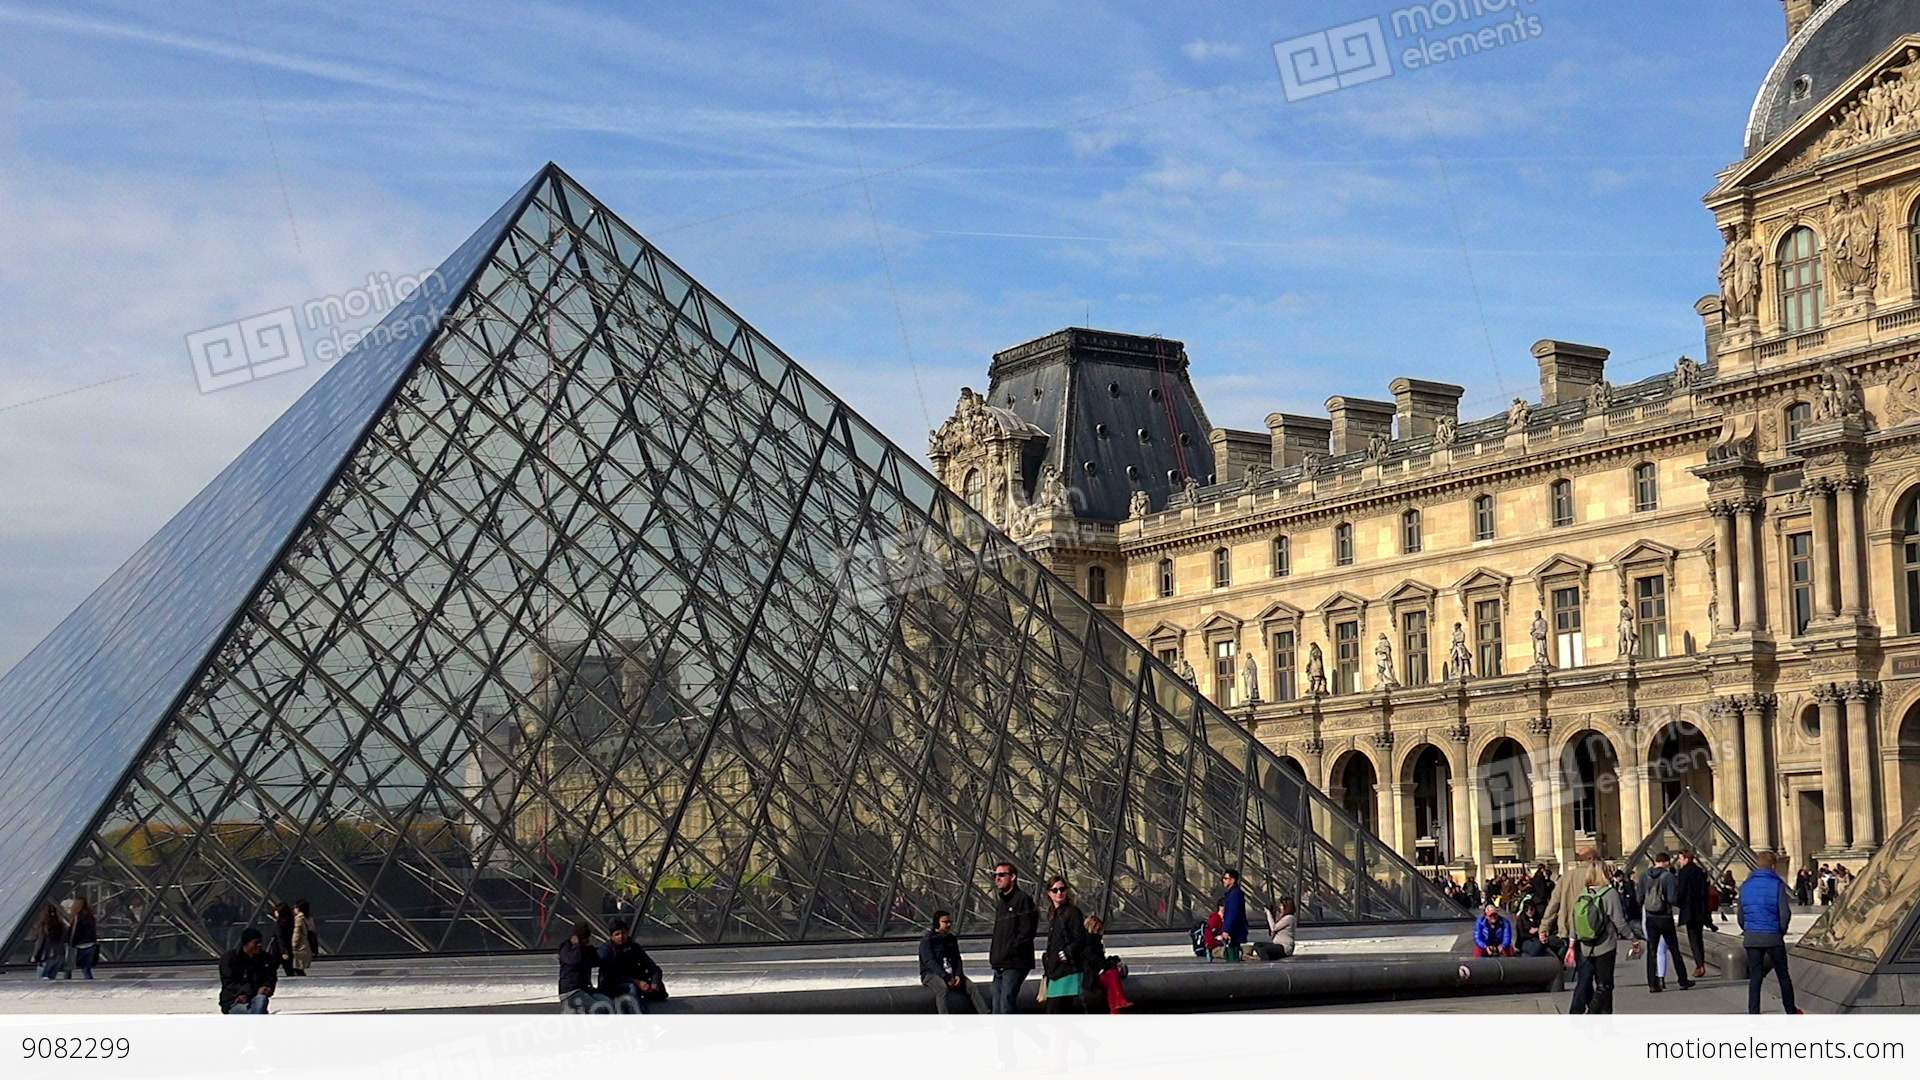 louvre the famous art museum in paris pyramid france